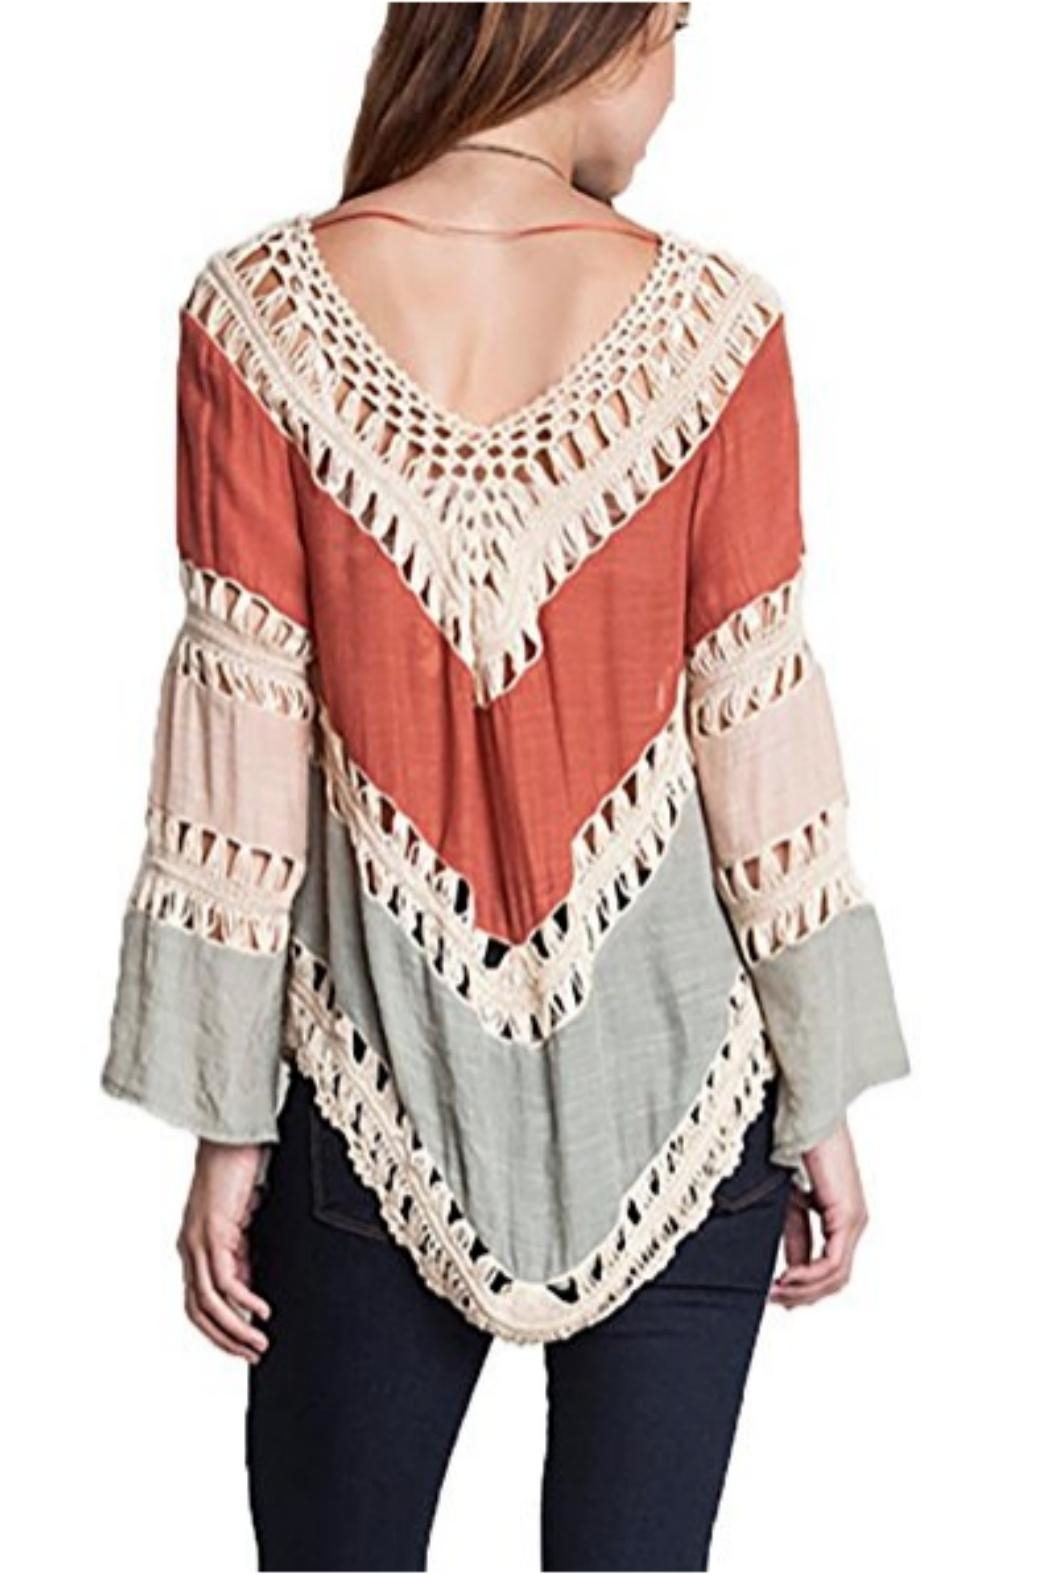 Umgee USA Crochet-Lace Color-Block Tunic - Front Full Image